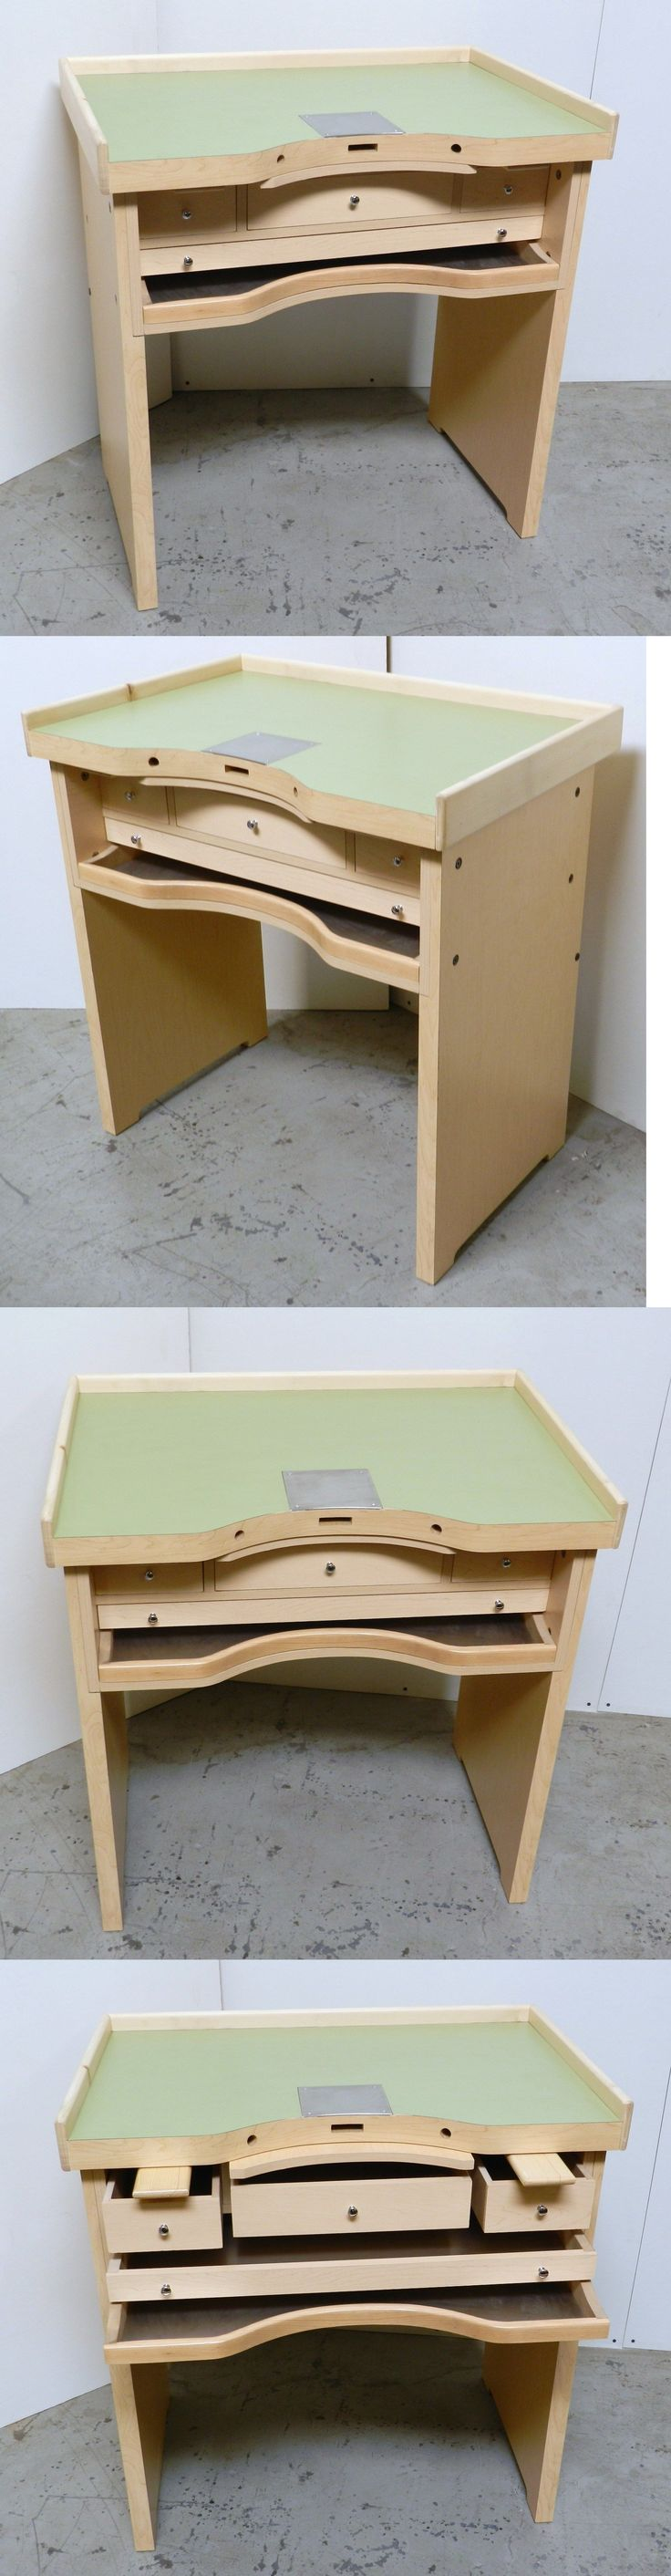 1000 Ideas About Jewelers Workbench On Pinterest Workshop Workbench Ideas And Jewelry Tools